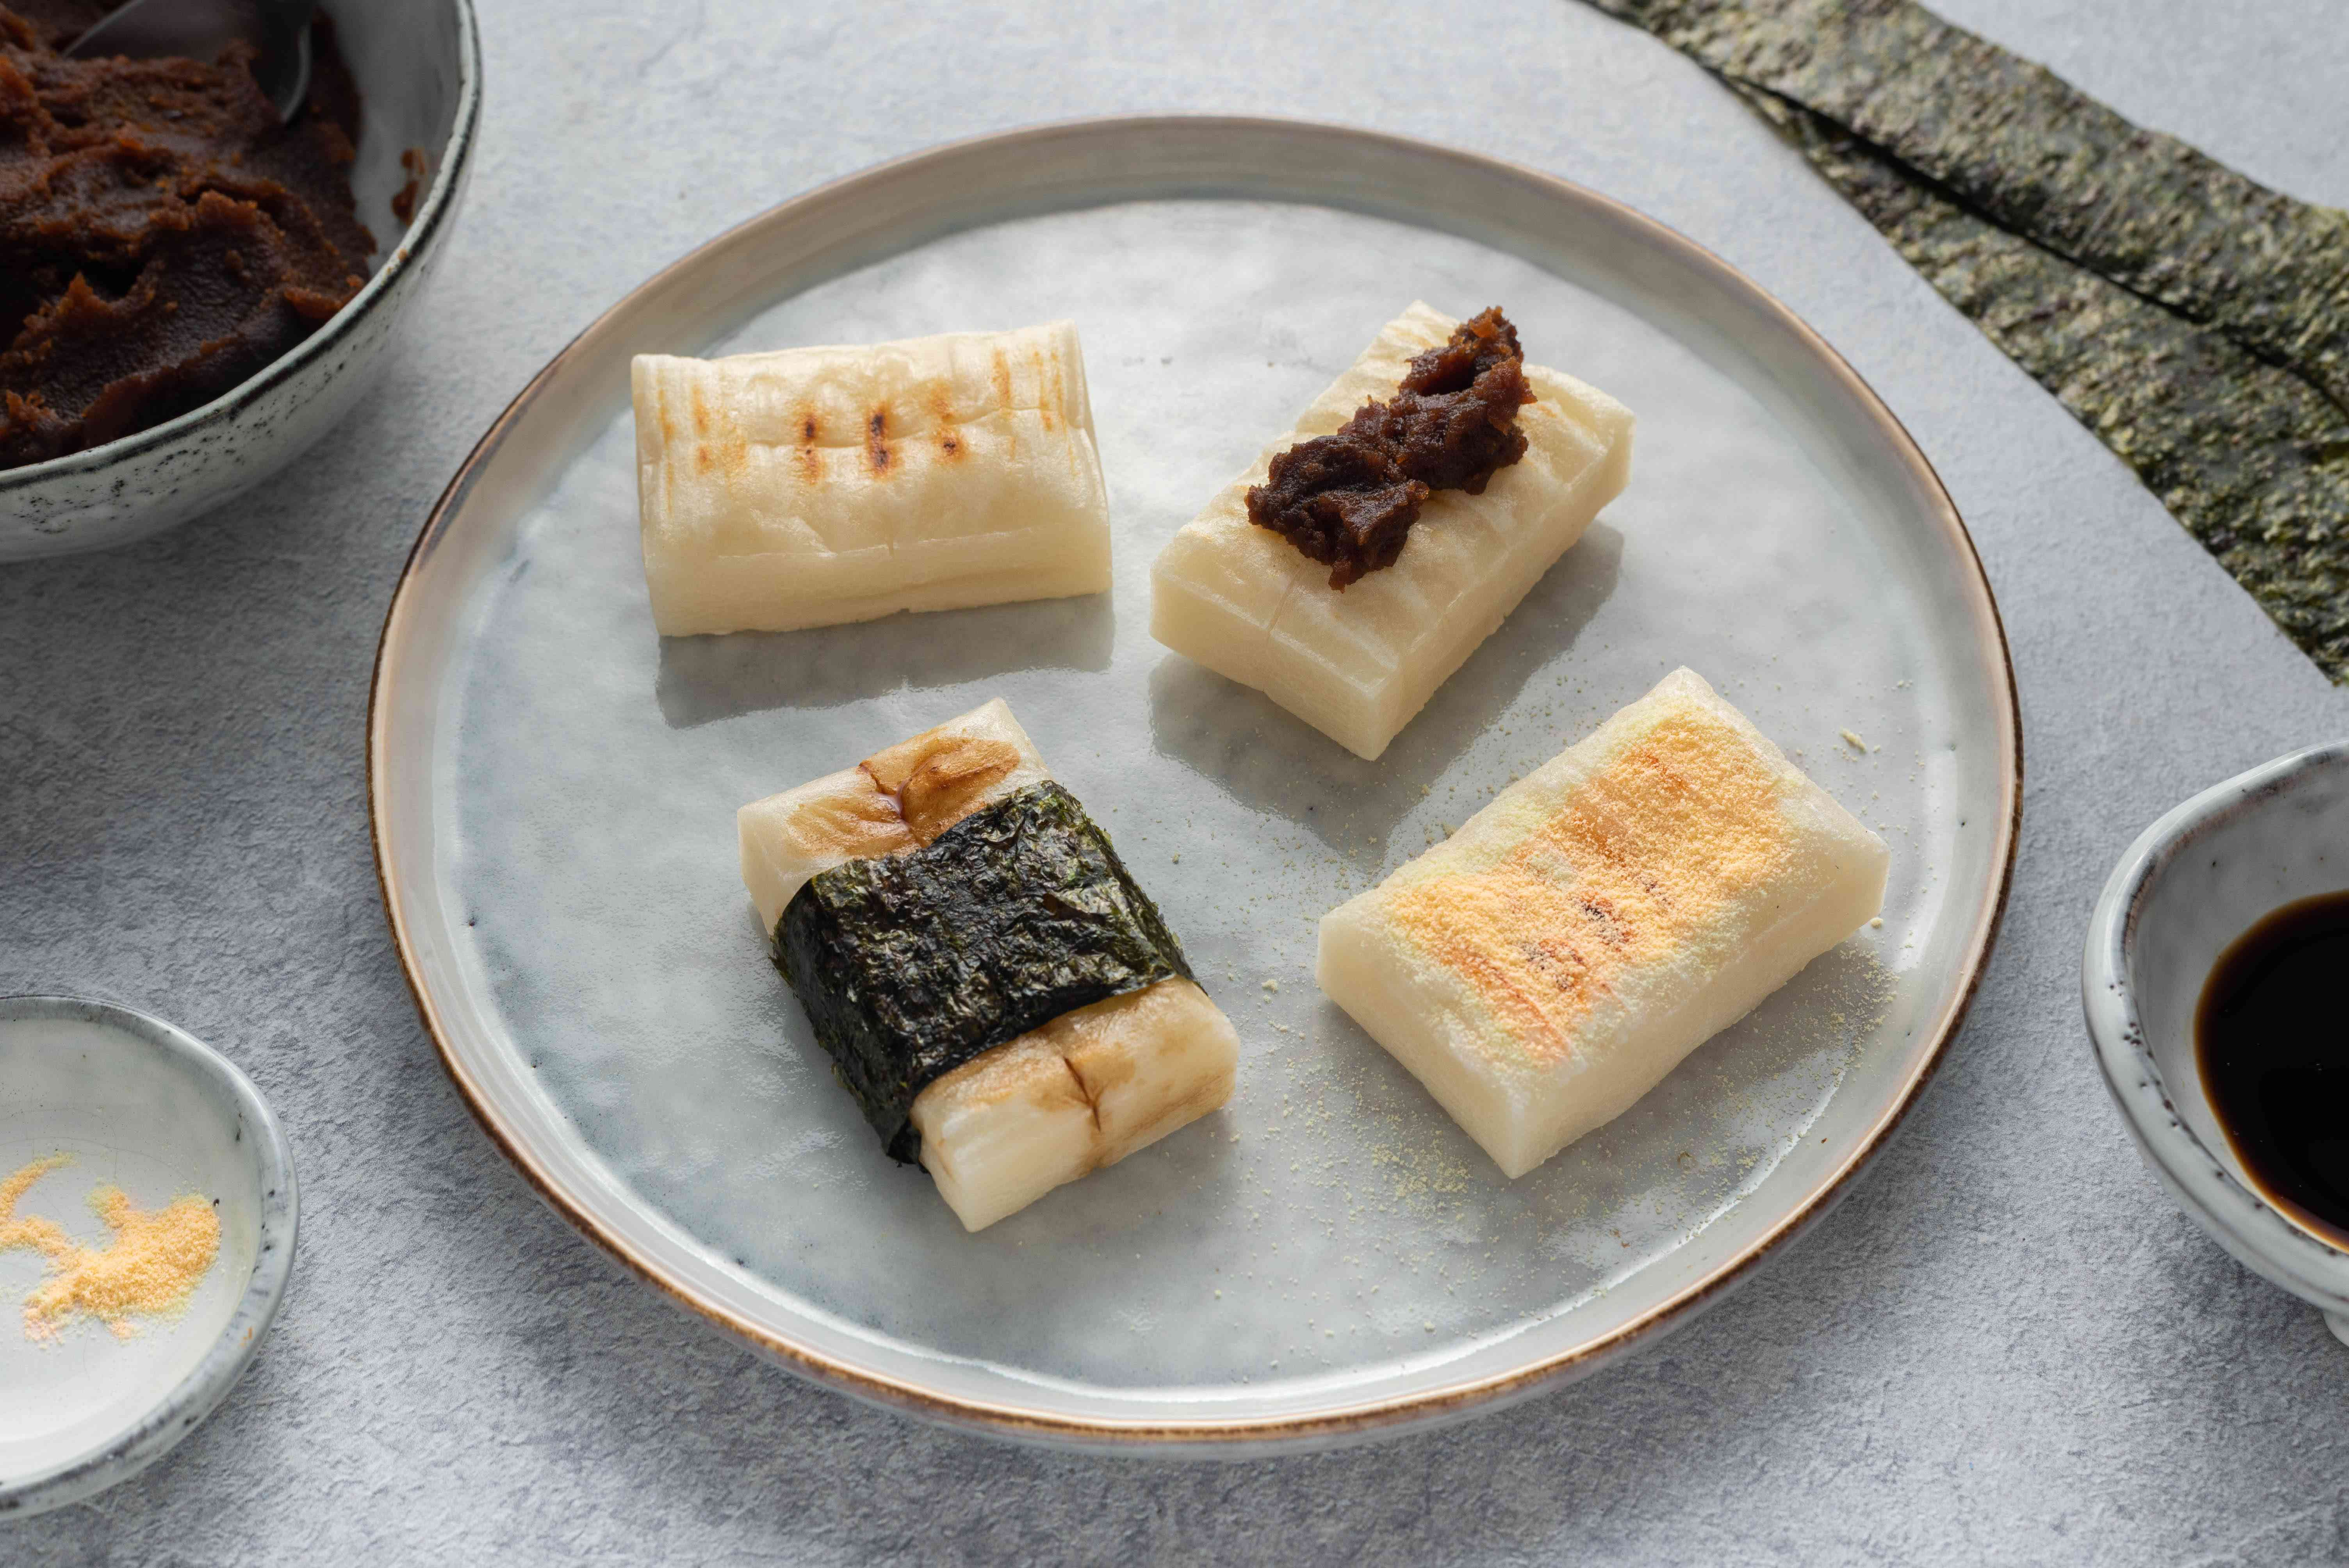 Yaki Mochi (Grilled Japanese Rice Cake) on a plate